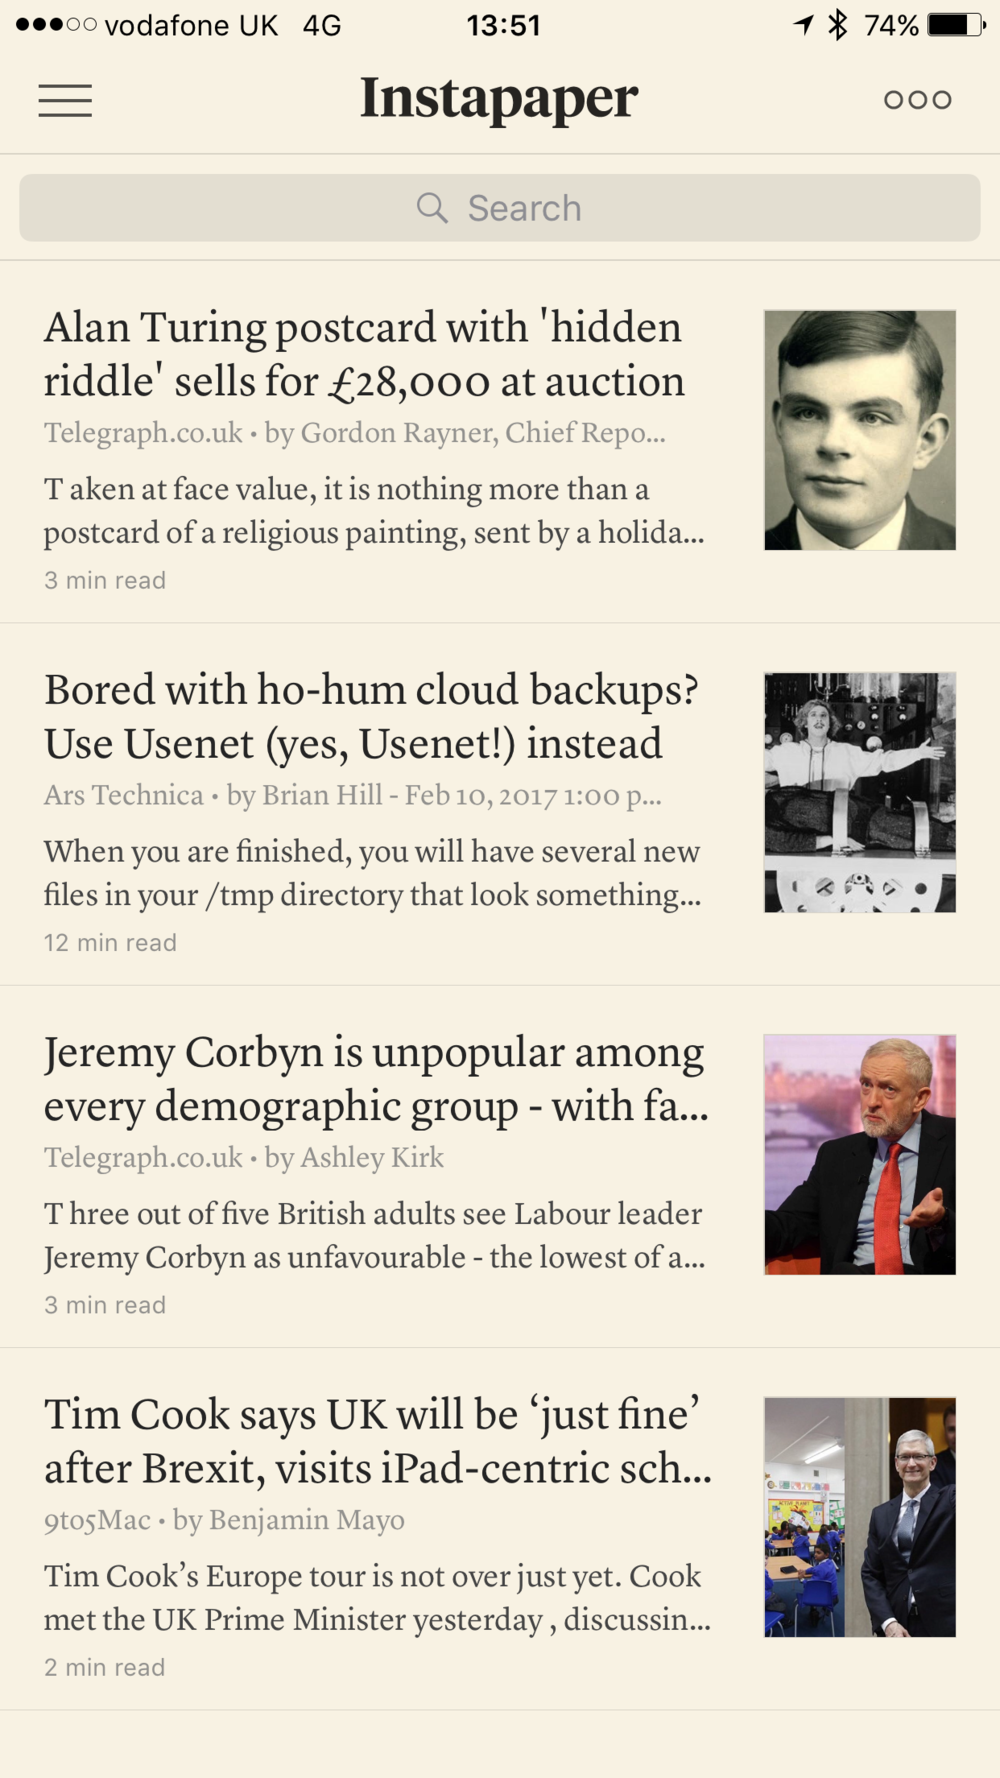 Instapaper presents snippets of news you have sent from other services. Here you see the summary view